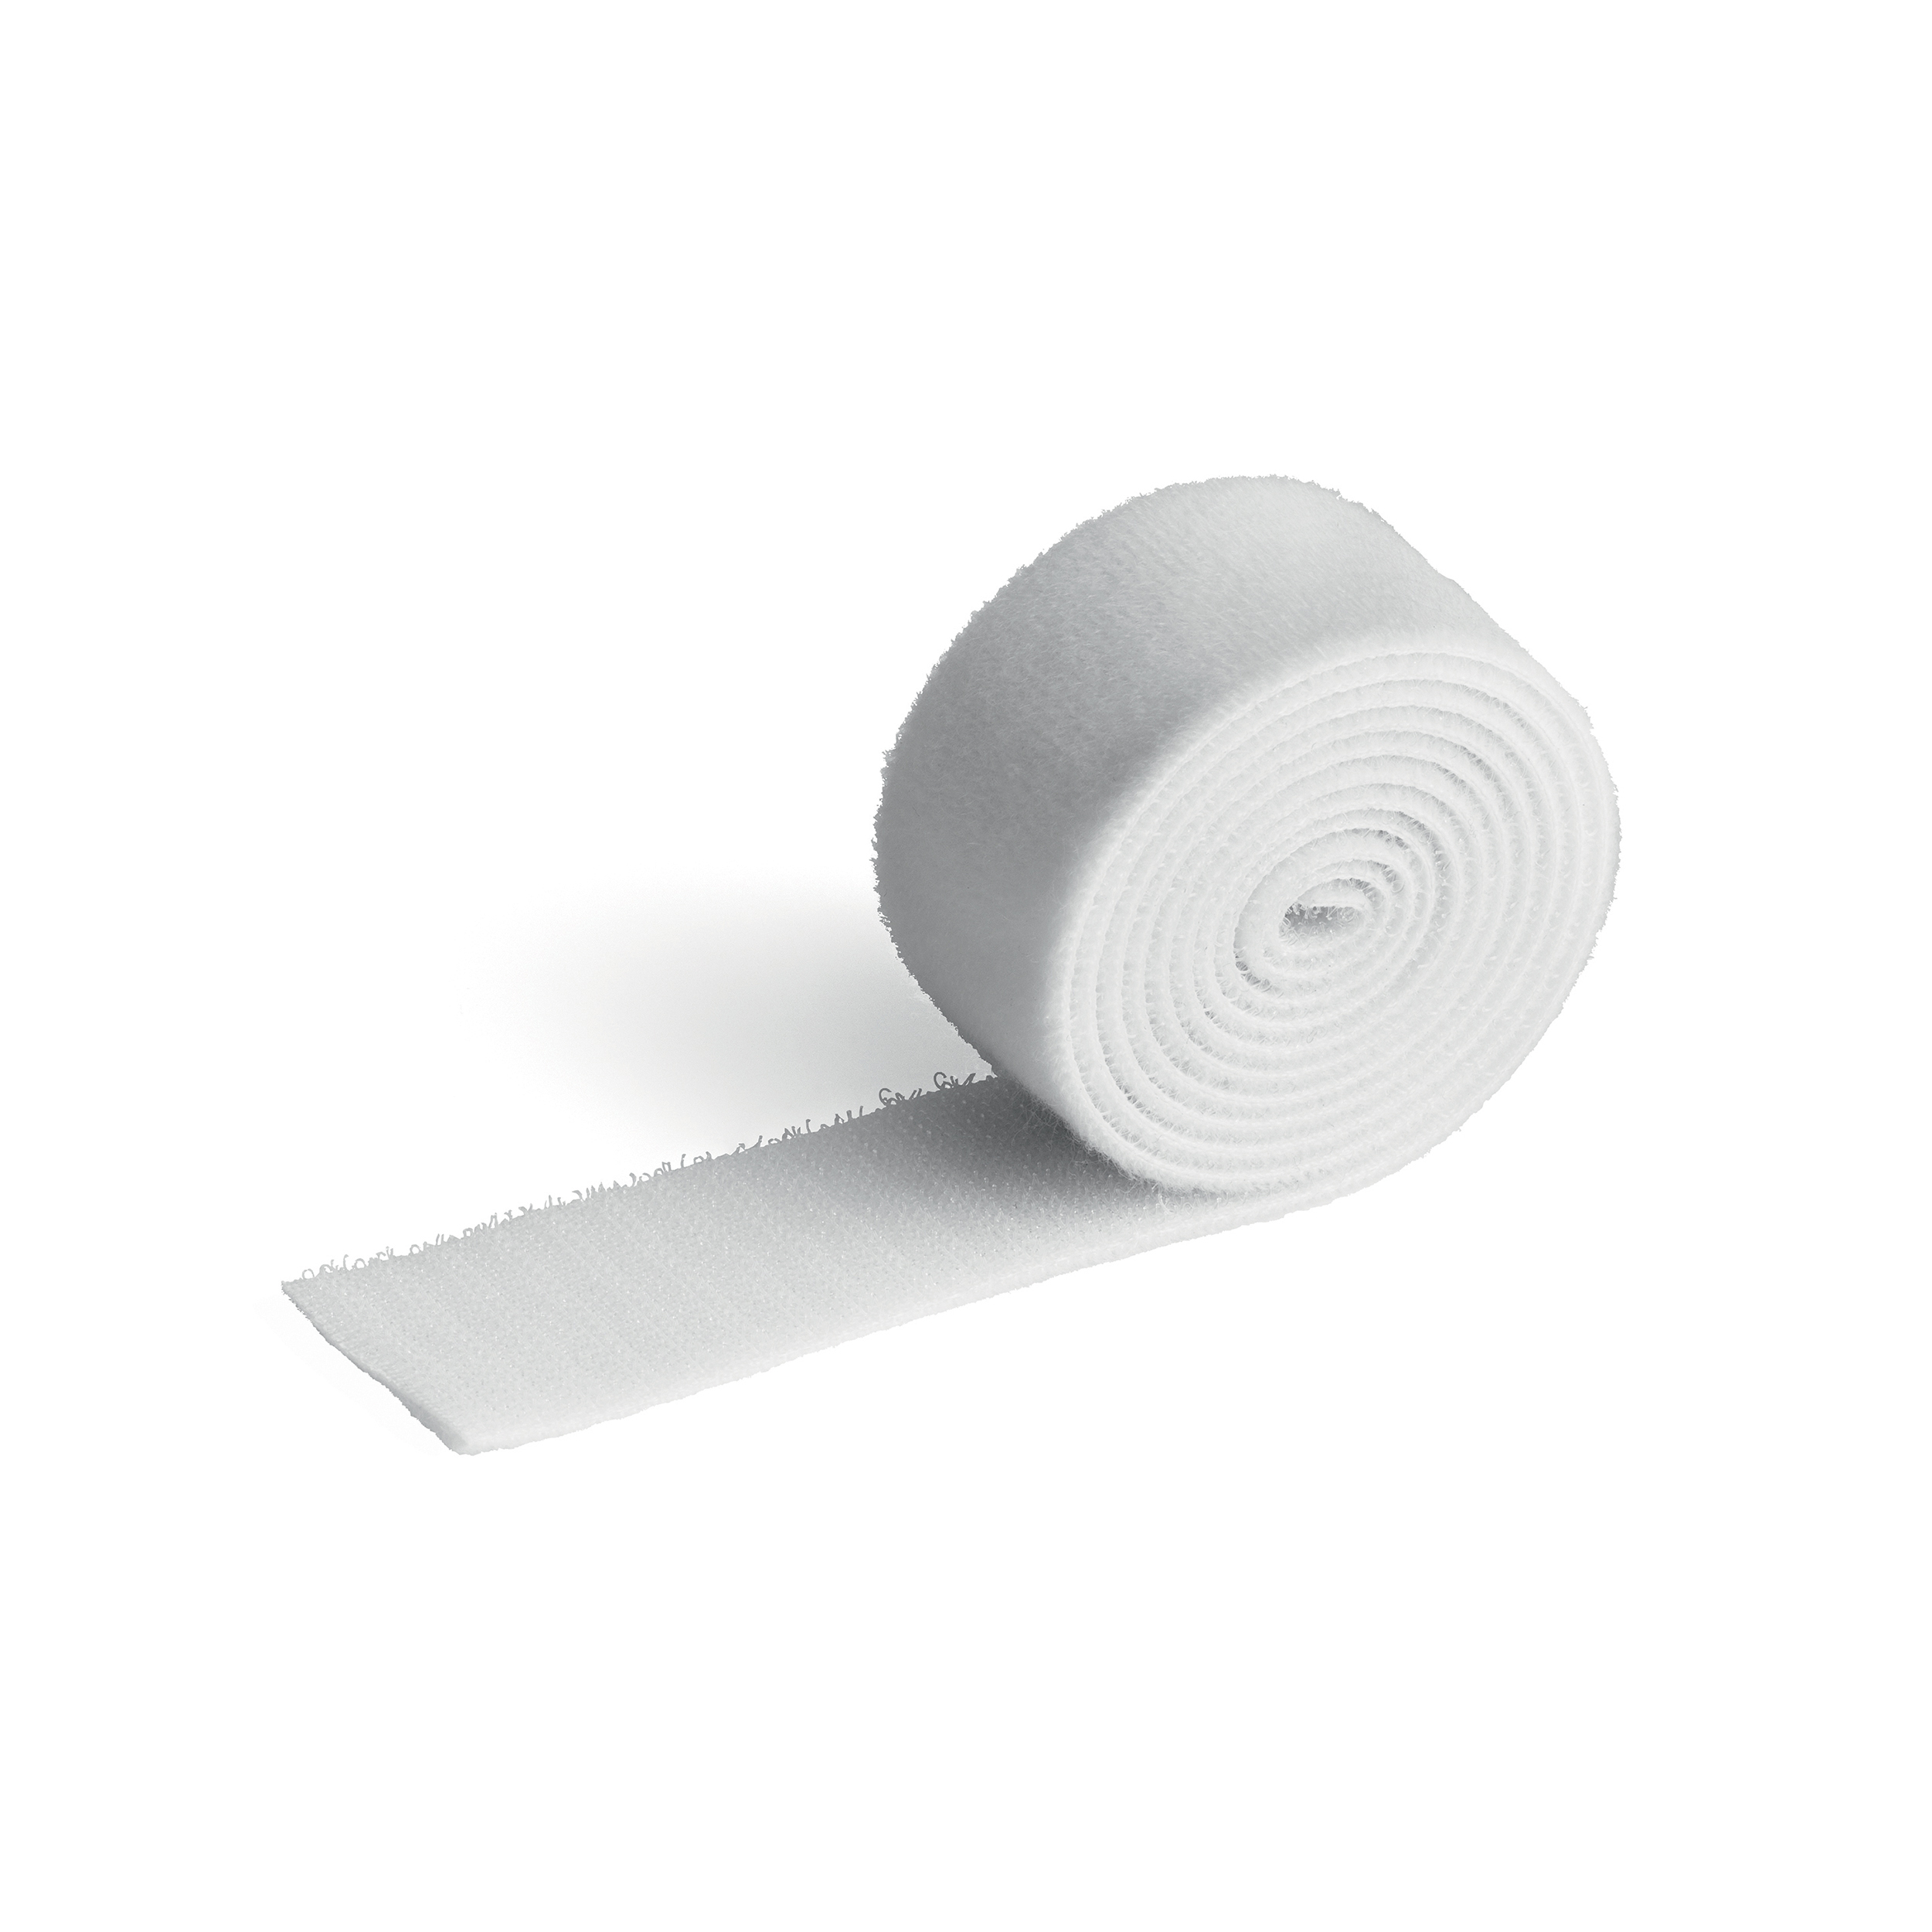 Cable Tidies Durable CAVOLINE GRIP 30 Self Gripping Cable Management Tape White Ref 503302